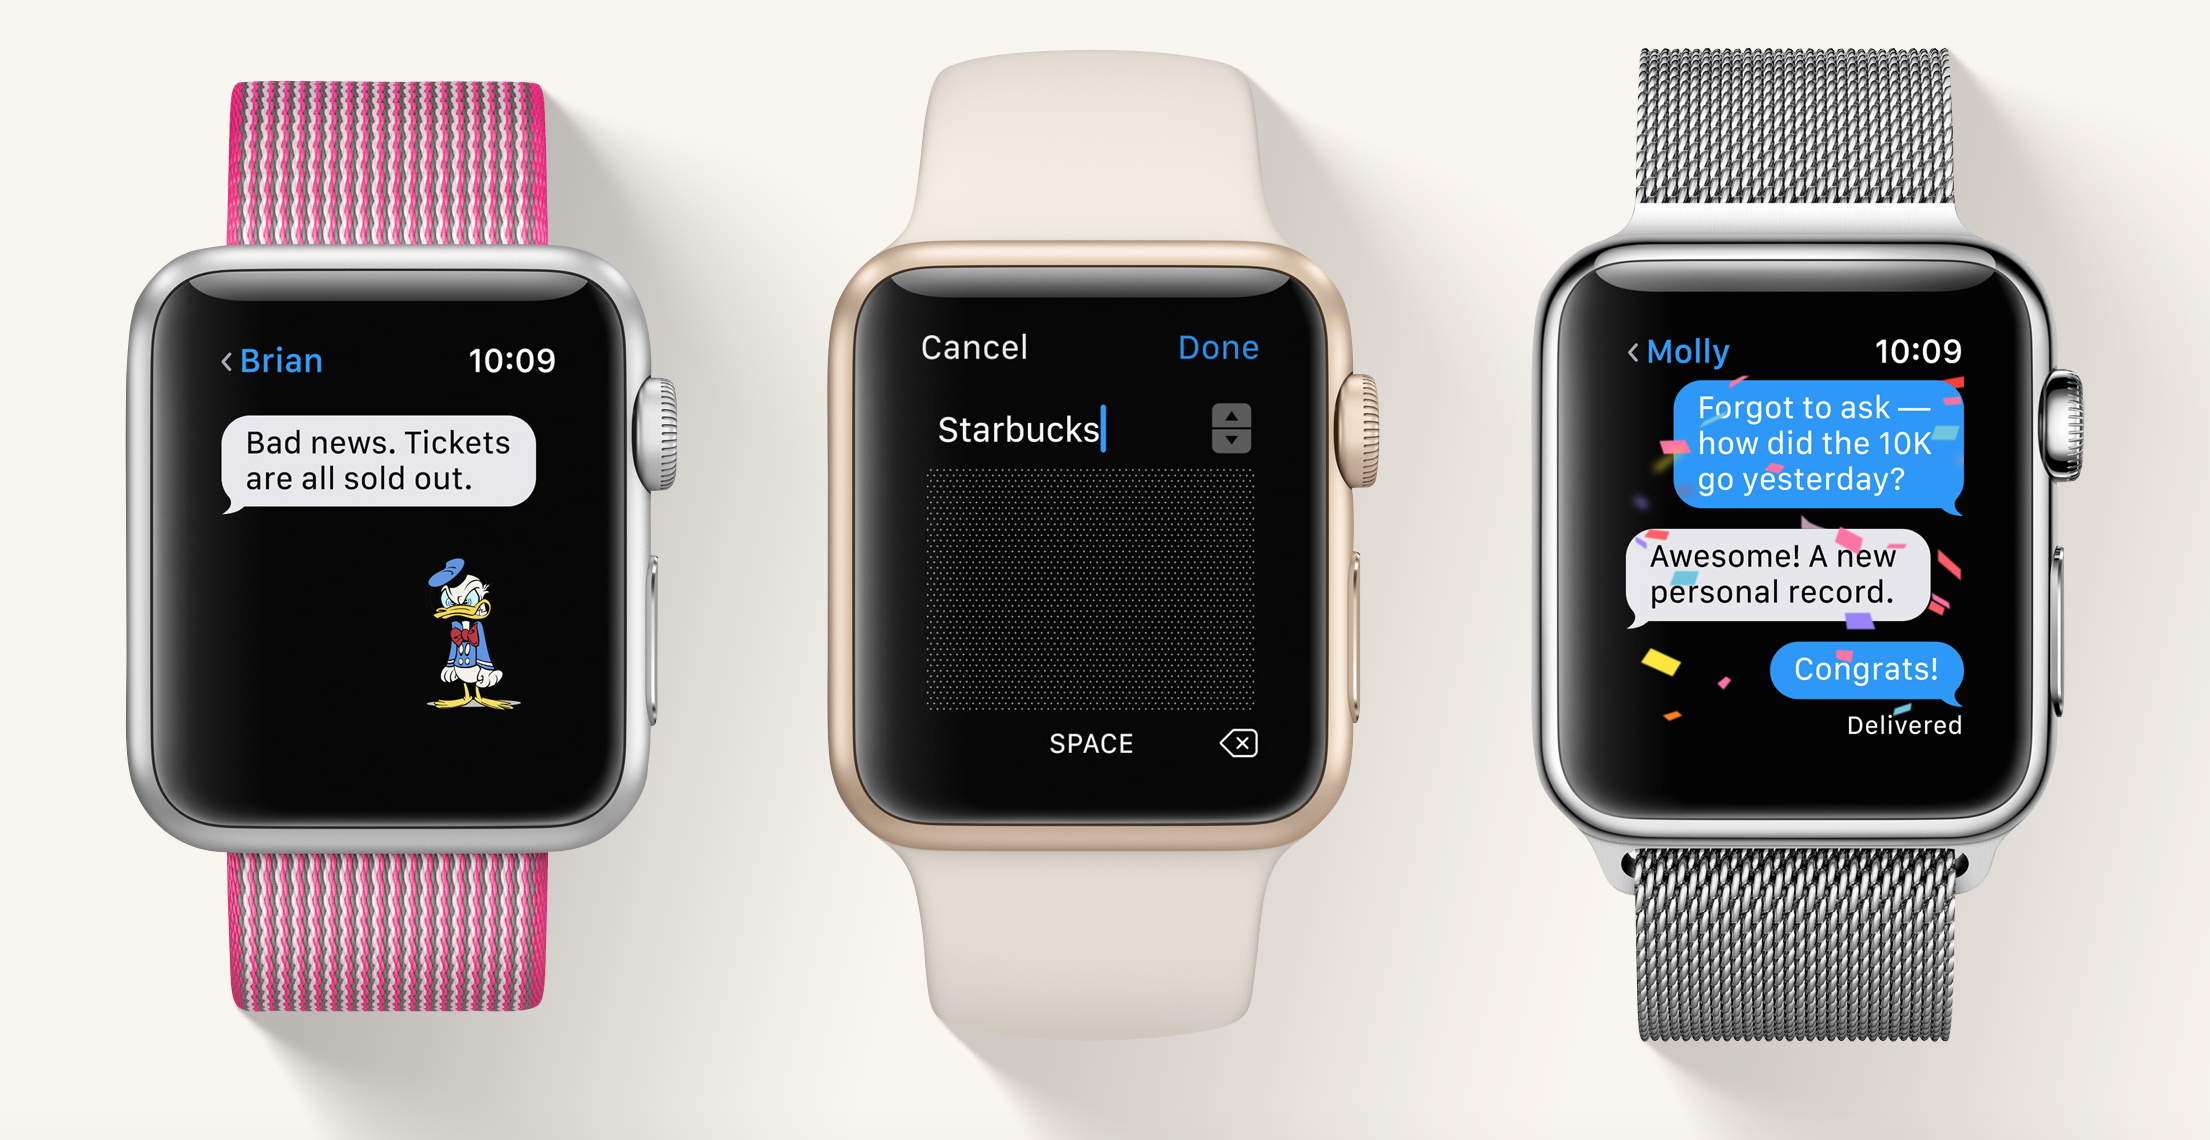 watchOS 3 Update for Apple Watch Now Publicly Available